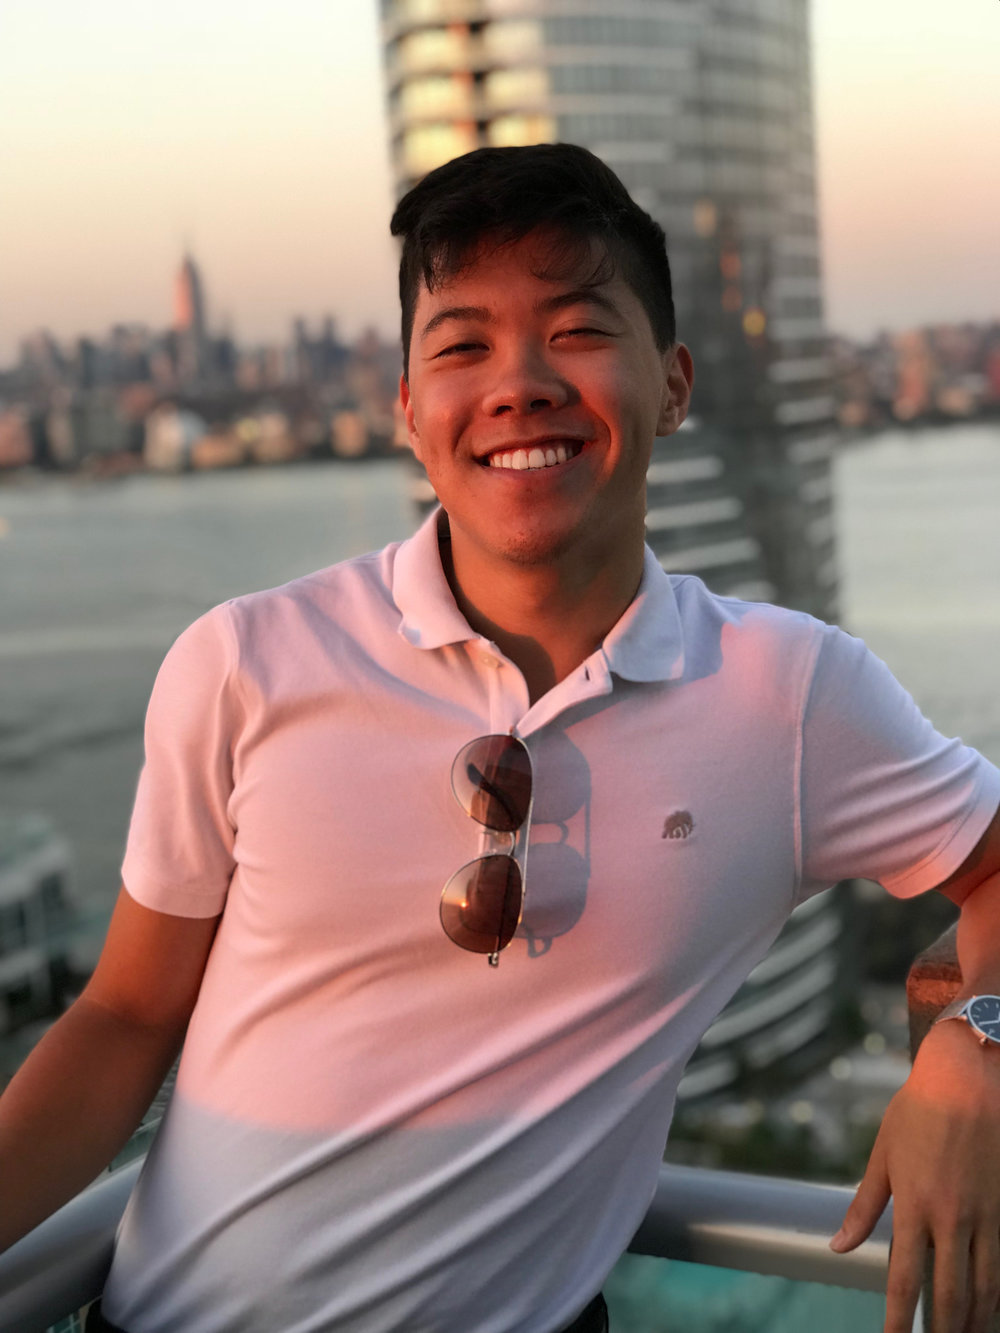 David Yu, Conference Director - David is a first-year in Ezra Stiles college from Fort Lee, New Jersey. He is interested in majoring in Economics and Cognitive Science. In his free time, David enjoys playing piano and designing buildings, houses, cars, and cities. He spent his past summer working as a surgical assistant at a dental office, where he learned the importance of not only flossing every night but also telling other people (his suitemates) to floss. At Yale, David is the captain of the Stiles IM volleyball team, and he can often be seen badgering people in the dining hall to sign up the night before games. He is also a member of the YMUN secretariat, helping to host this year's conference. Please feel free to reach out to ymuni.conference@yira.org if you have any questions about the YMUNI program!